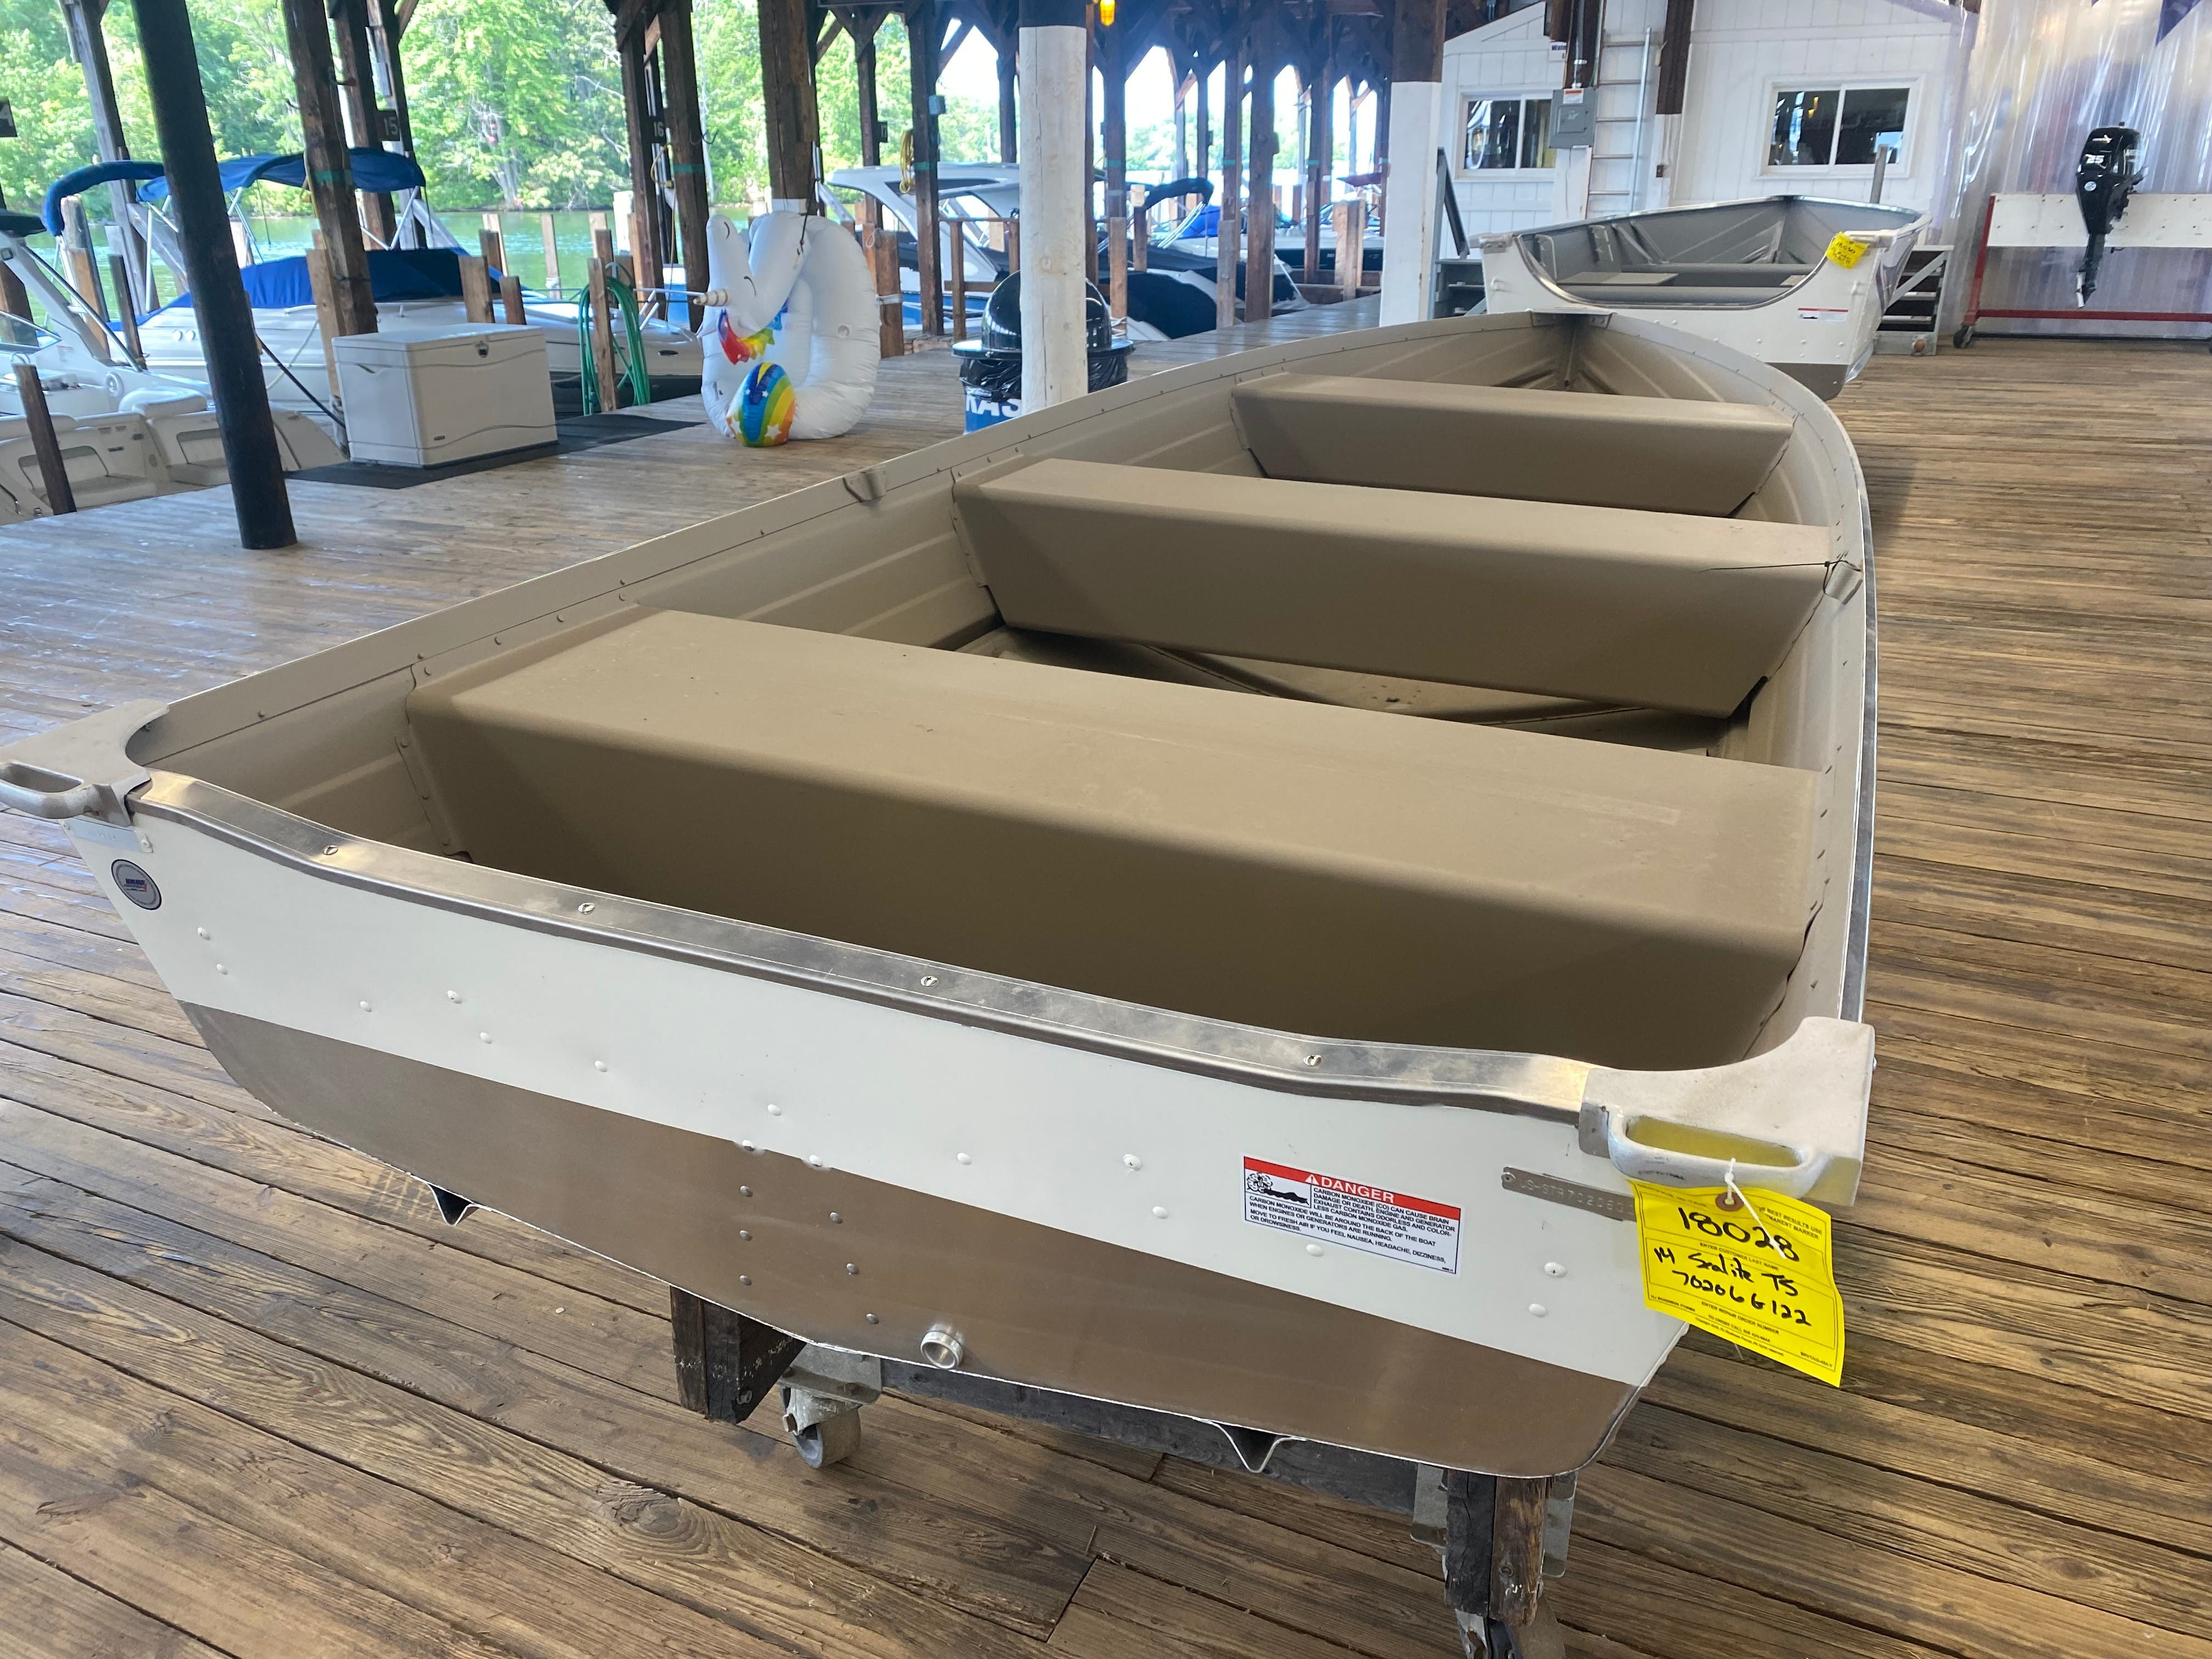 2022 Starcraft boat for sale, model of the boat is 14 SEALITE TS & Image # 6 of 6